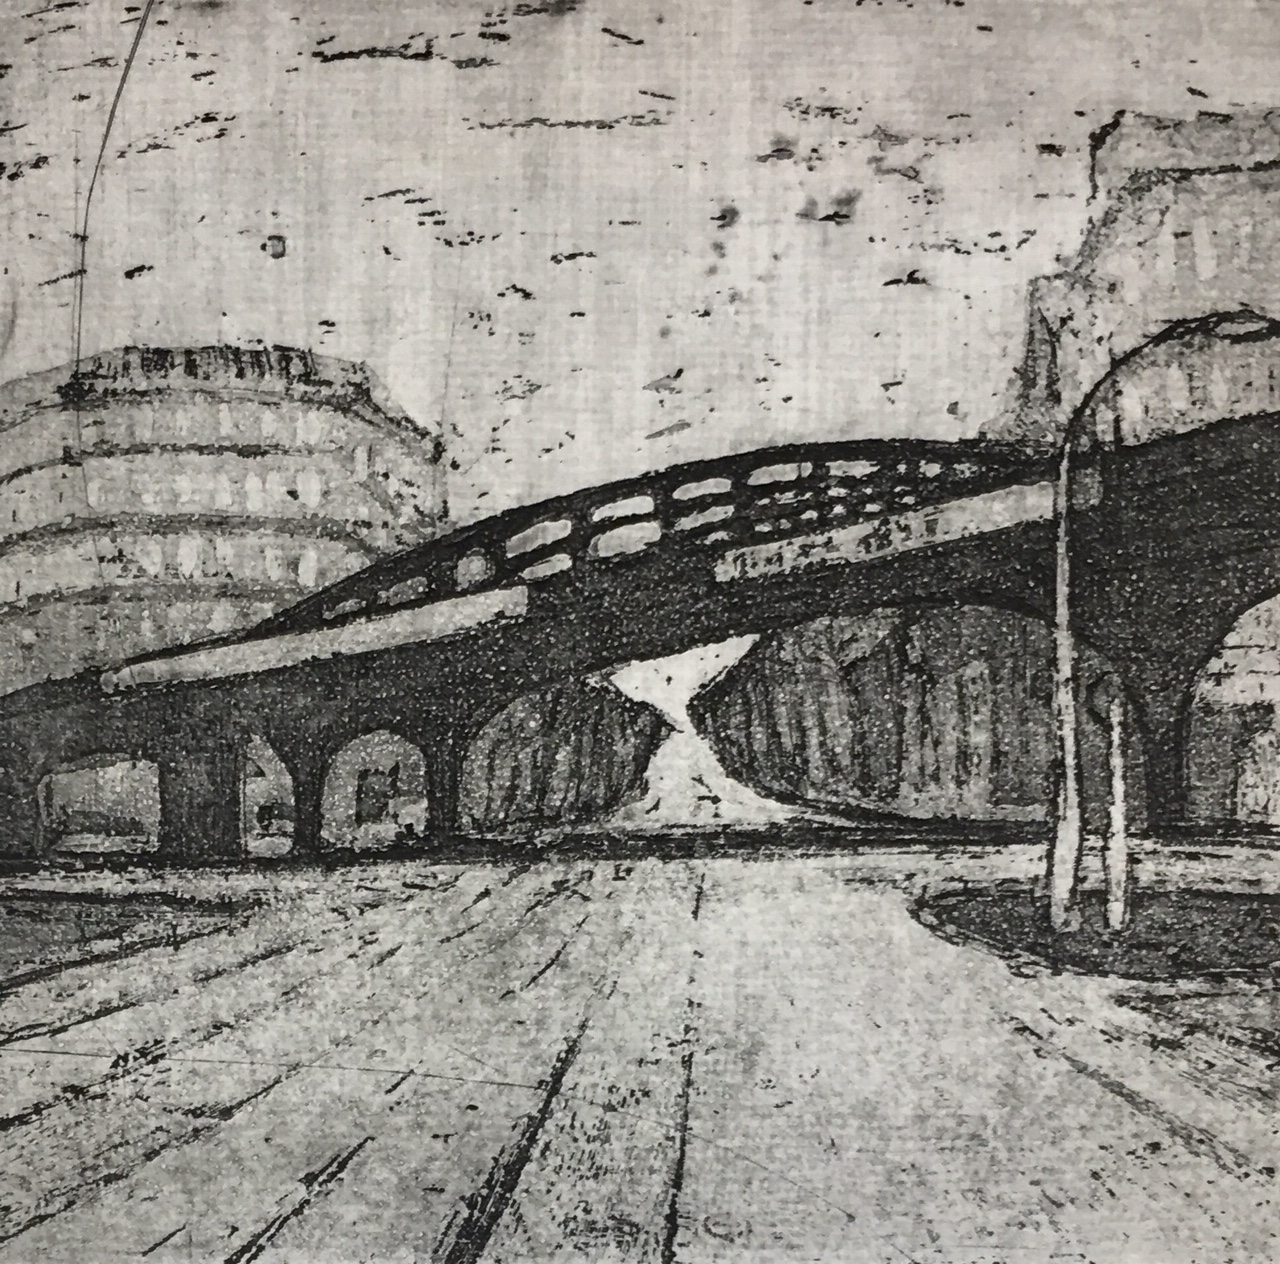 Monika Meiser | Elevated Railway Schönhauer Allee | 1985 | aquatint | signed and dated | 12 x 12.4 cm